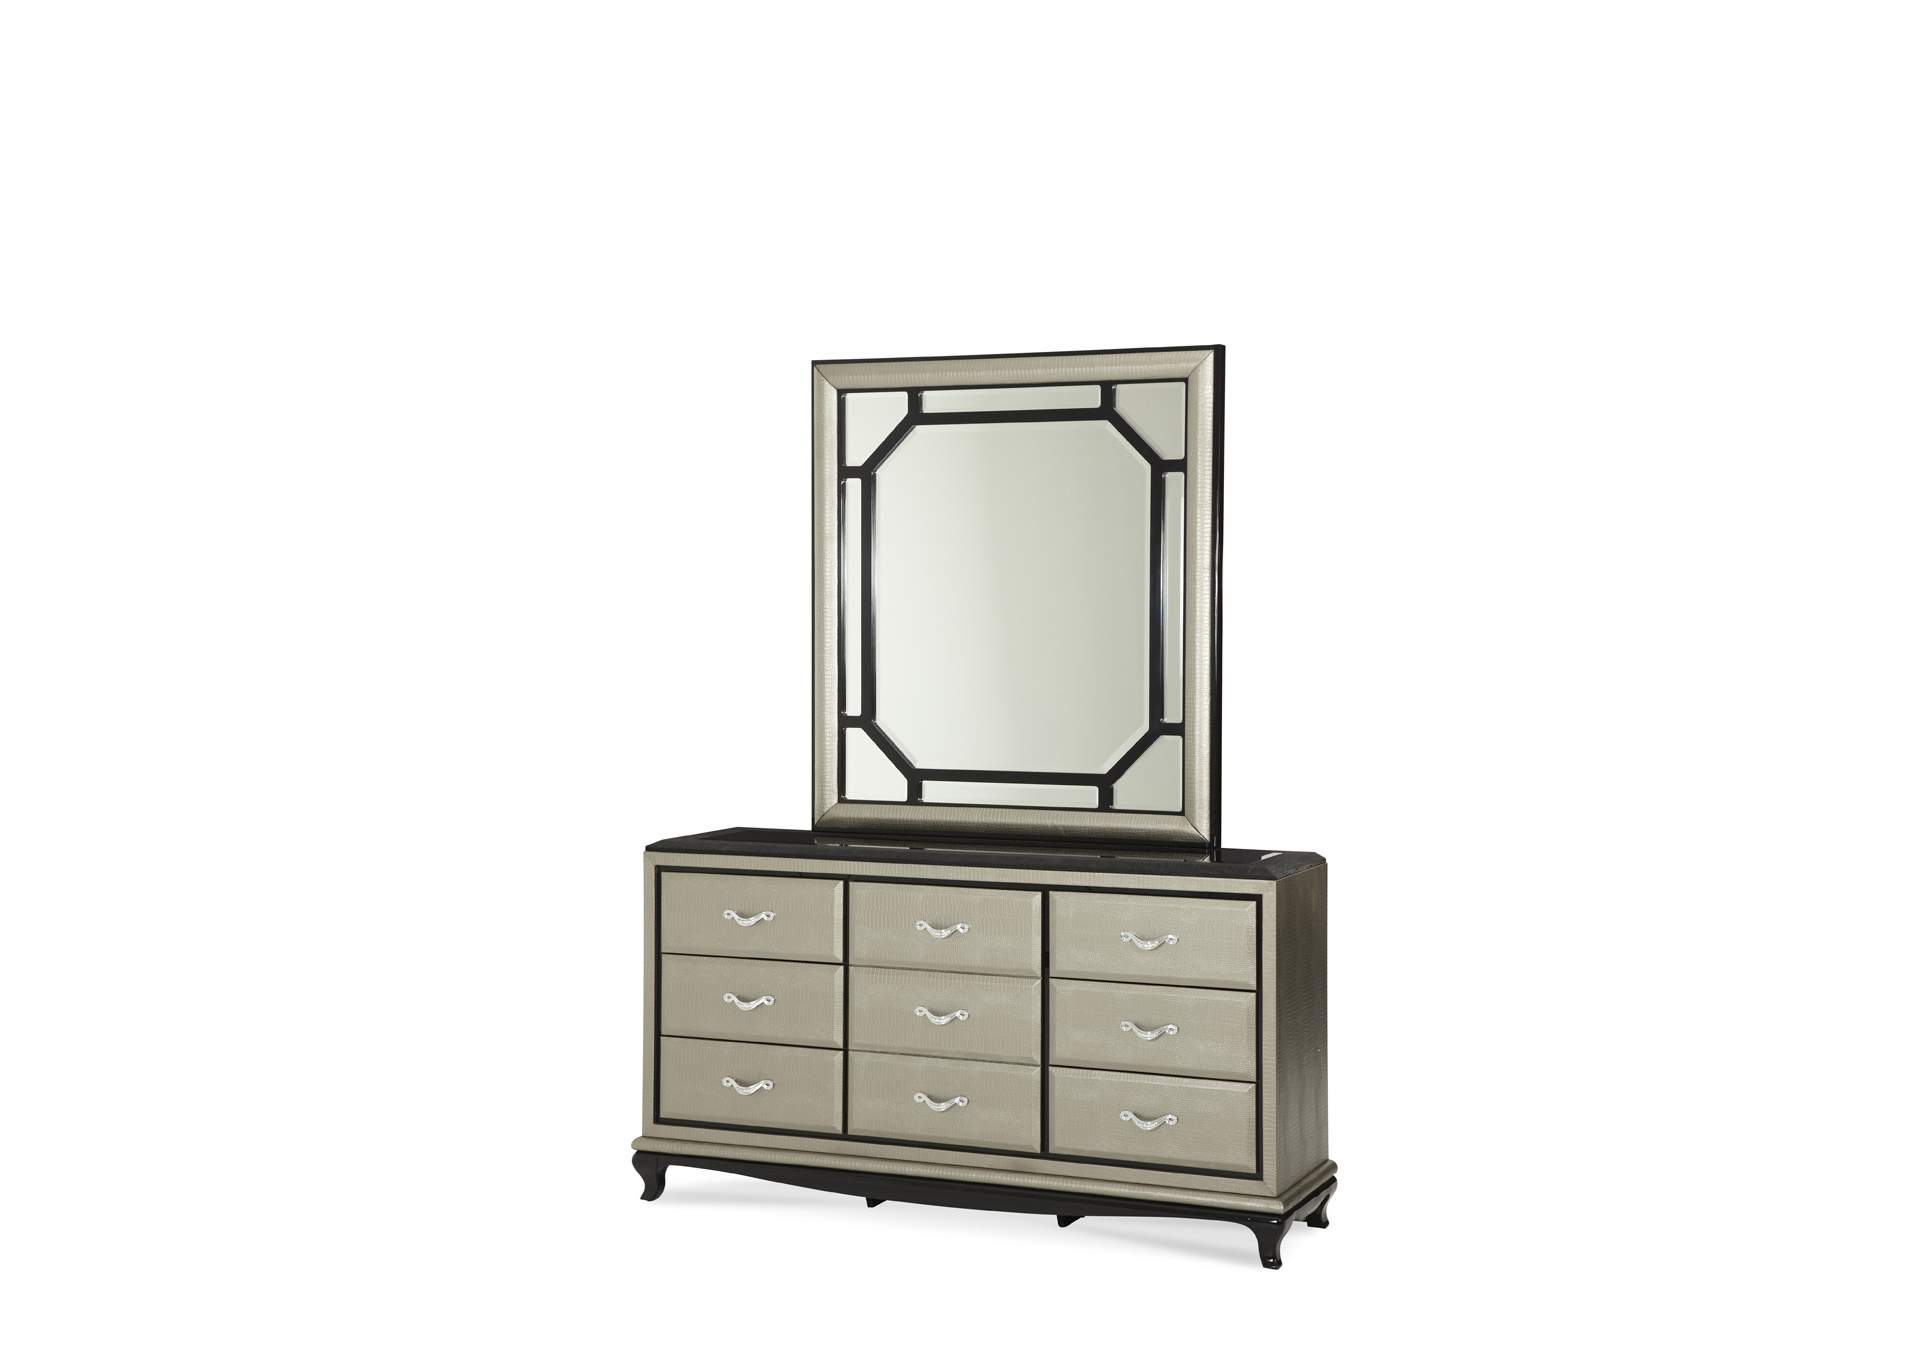 After Eight Pearl Rectangular Dresser Mirror,AICO